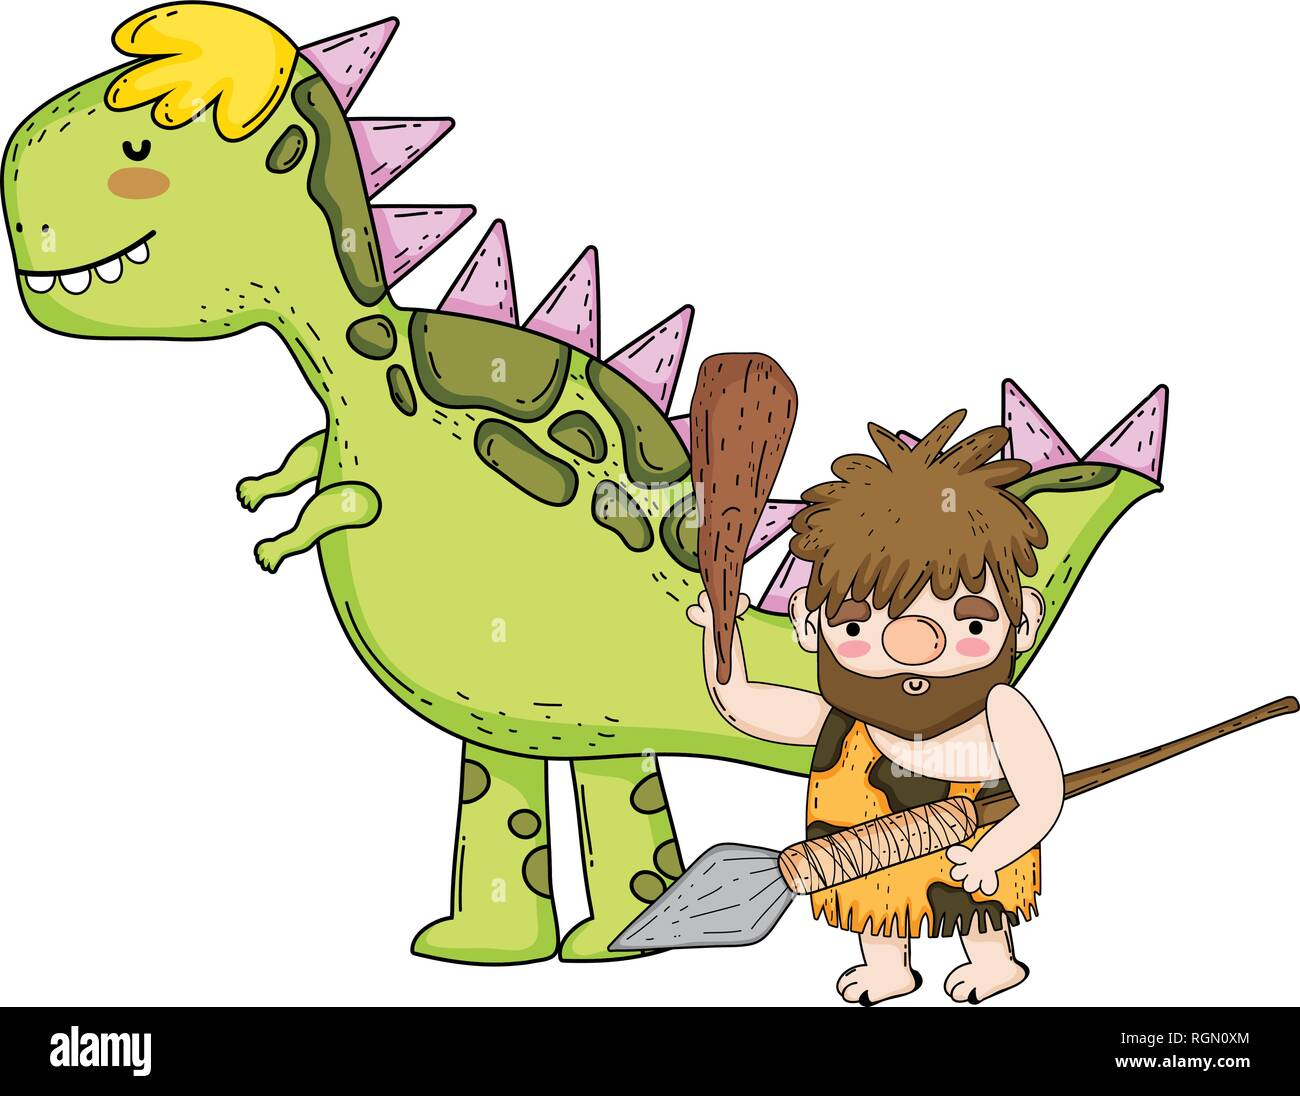 caveman with dinosaur characters - Stock Image